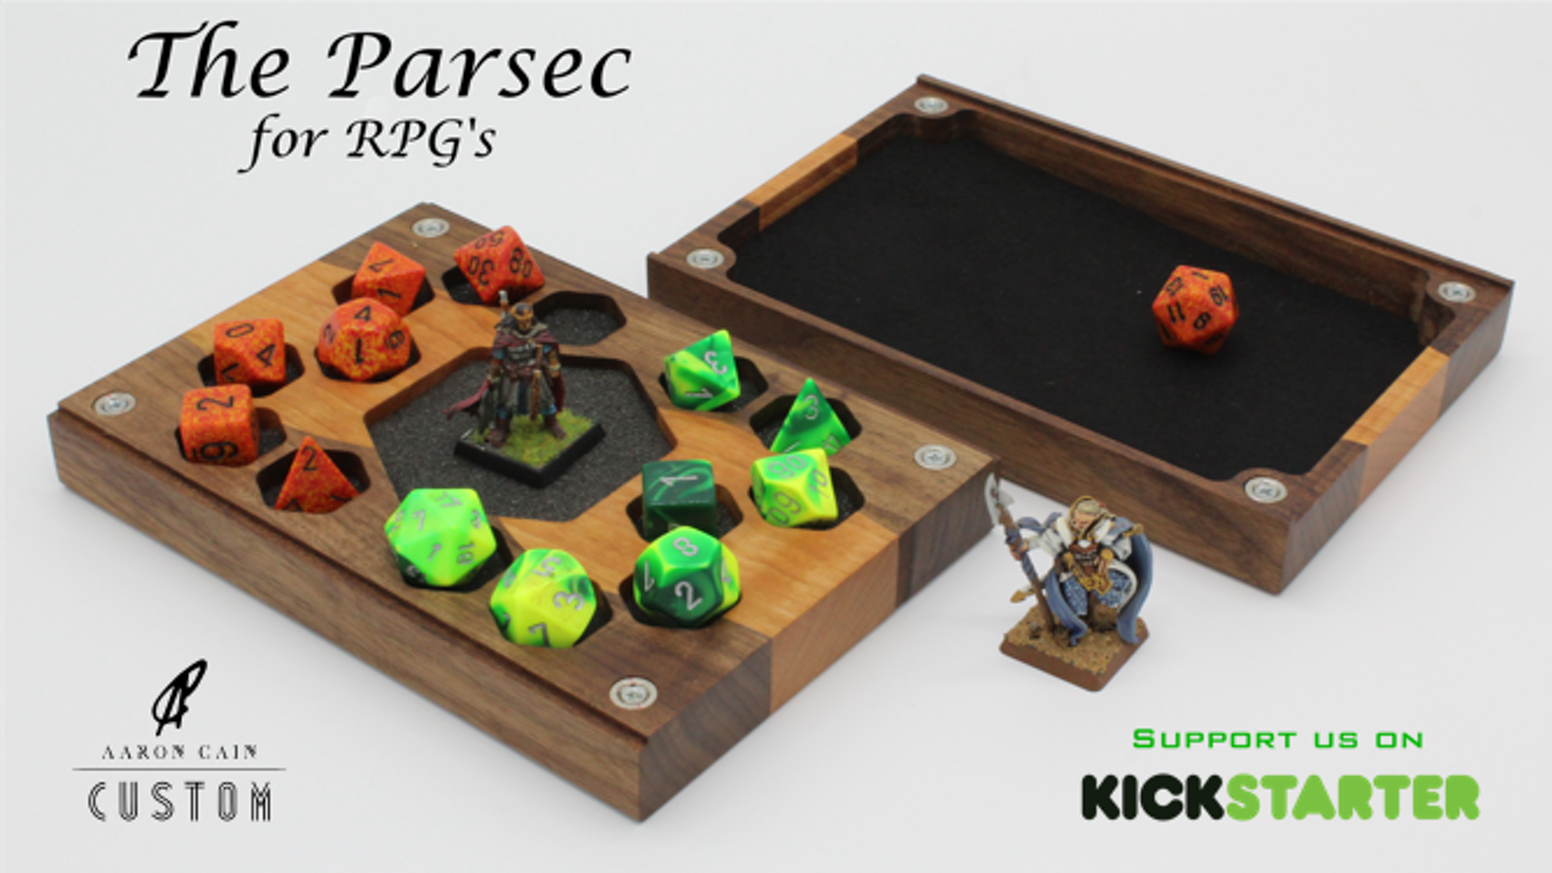 The Parsec for RPG's by Aaron Cain — Kickstarter